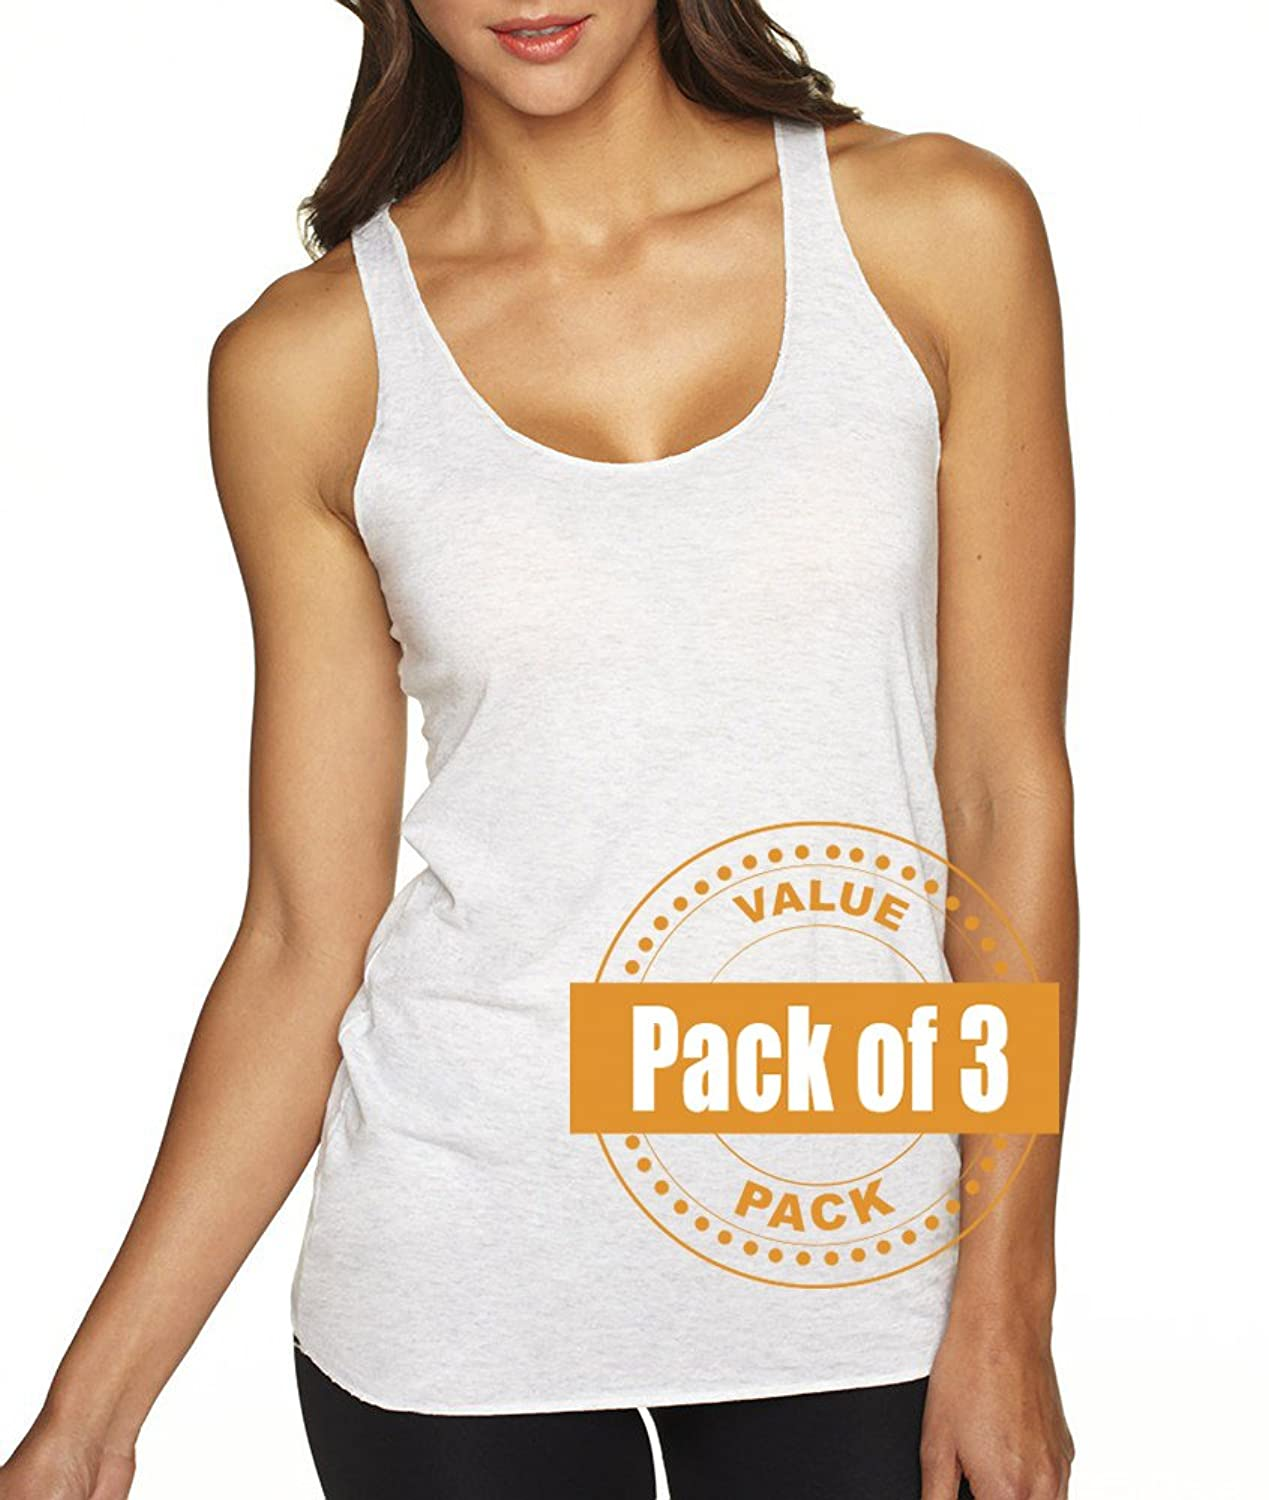 Next Level Womens Tri-Blend Racerback Tank Top 6733-Heather White (3 Pack)